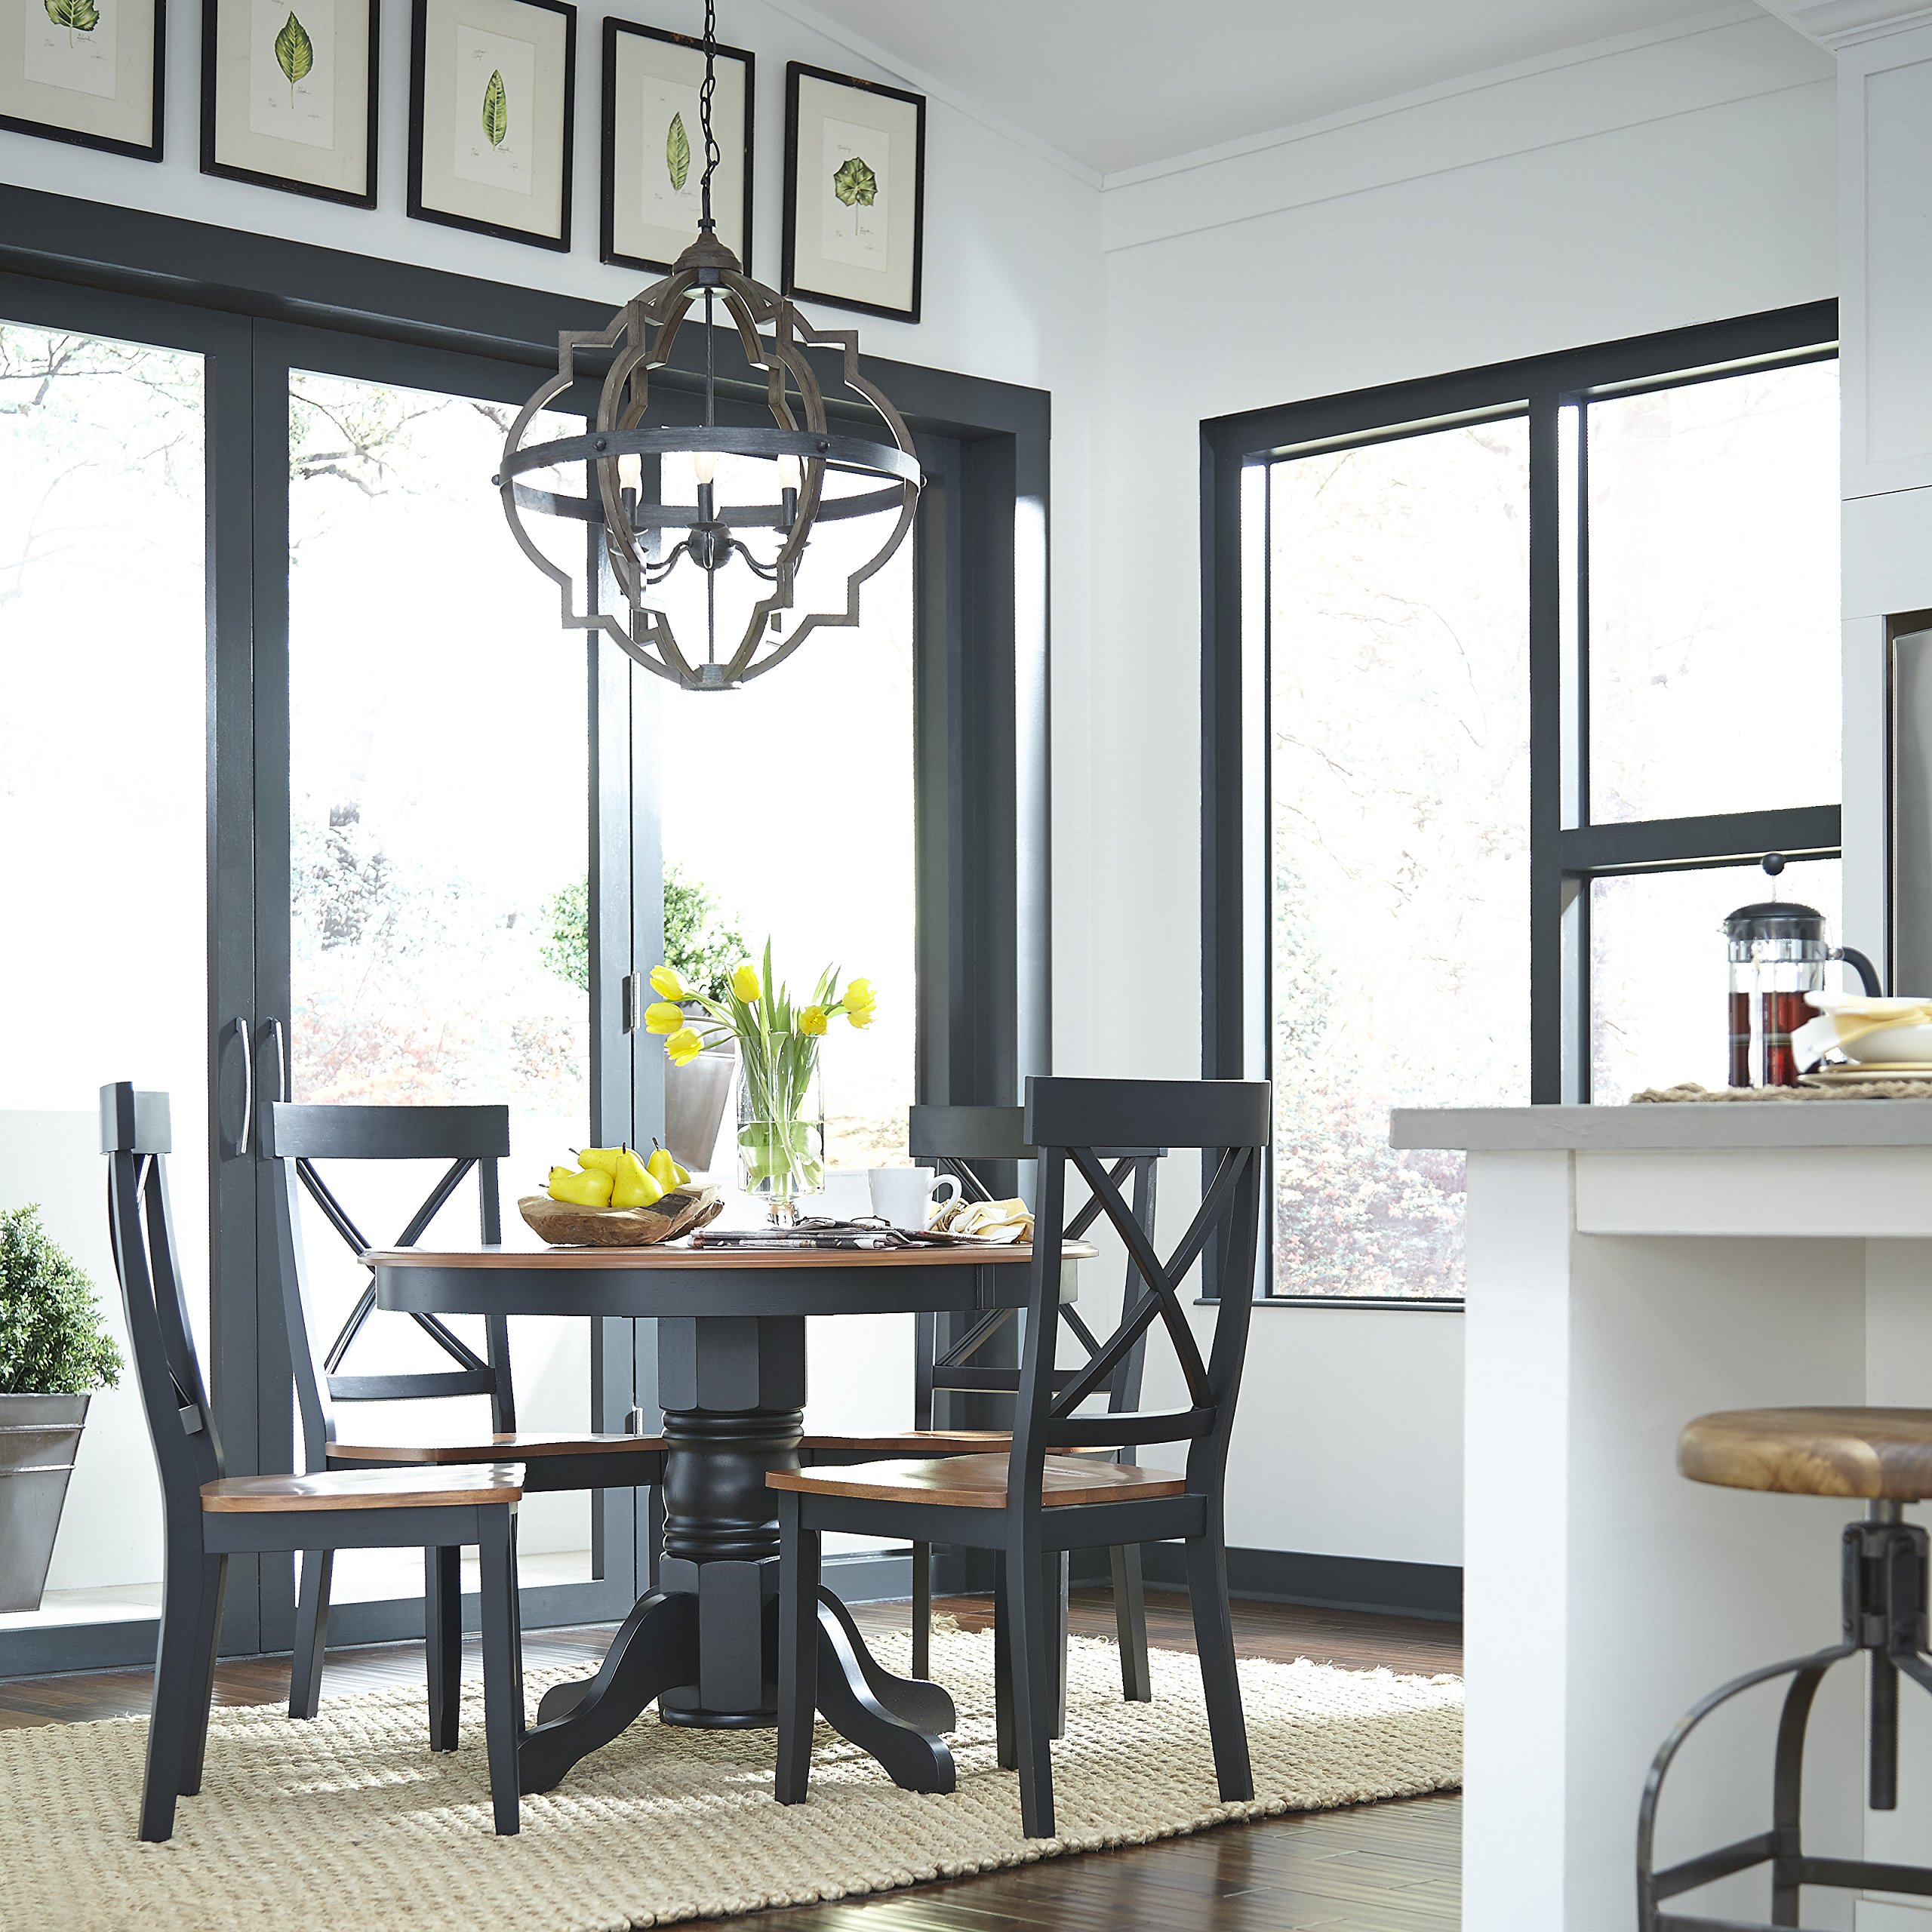 Home Styles 5168-30 Round Pedestal Dining Table, Black and Cottage Oak Finish by Home Styles (Image #3)